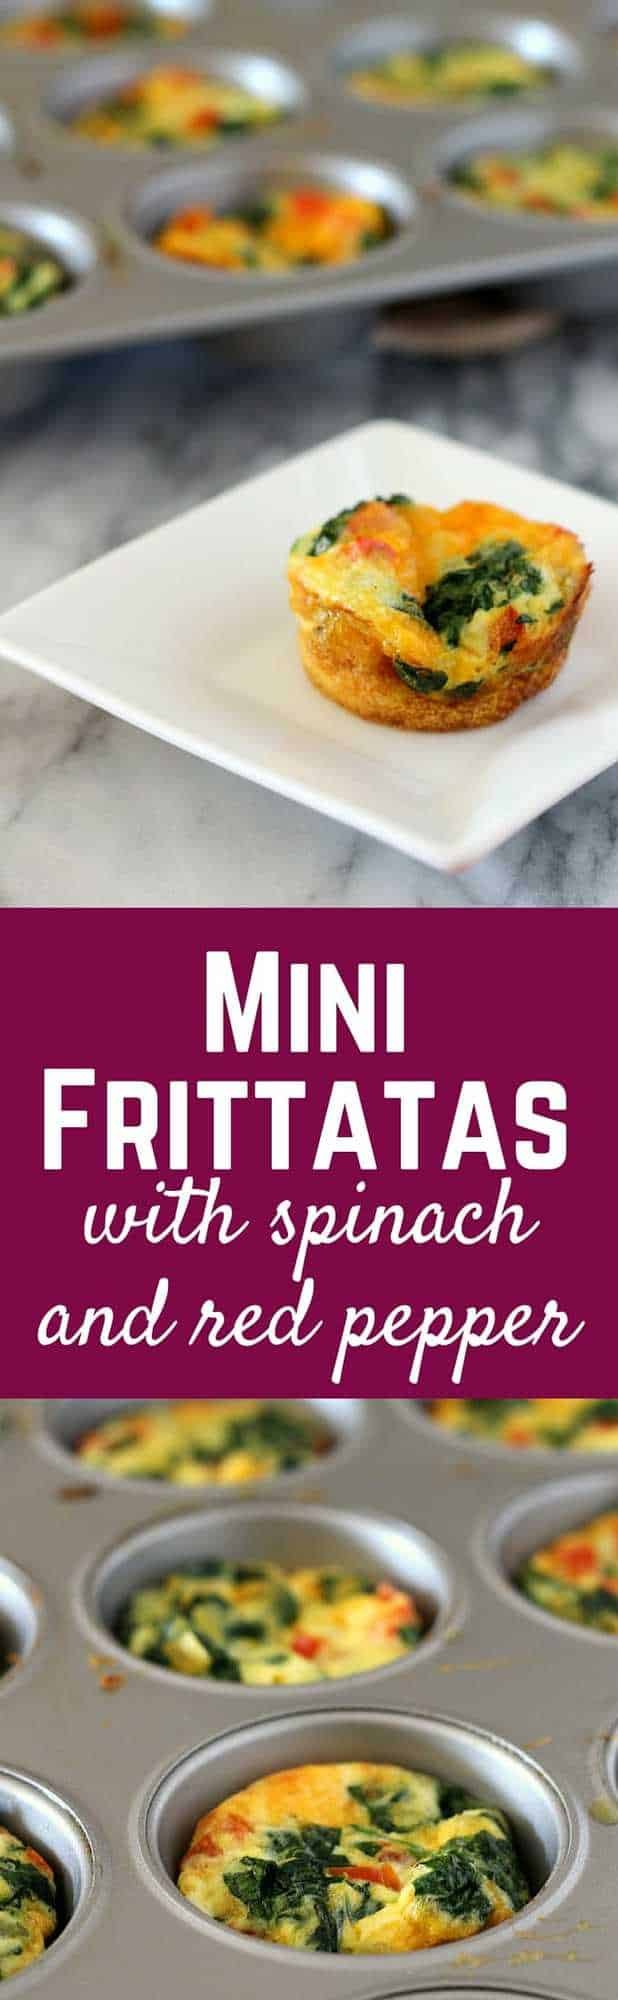 Mini Frittatas with Spinach and Red Pepper - Rachel Cooks®